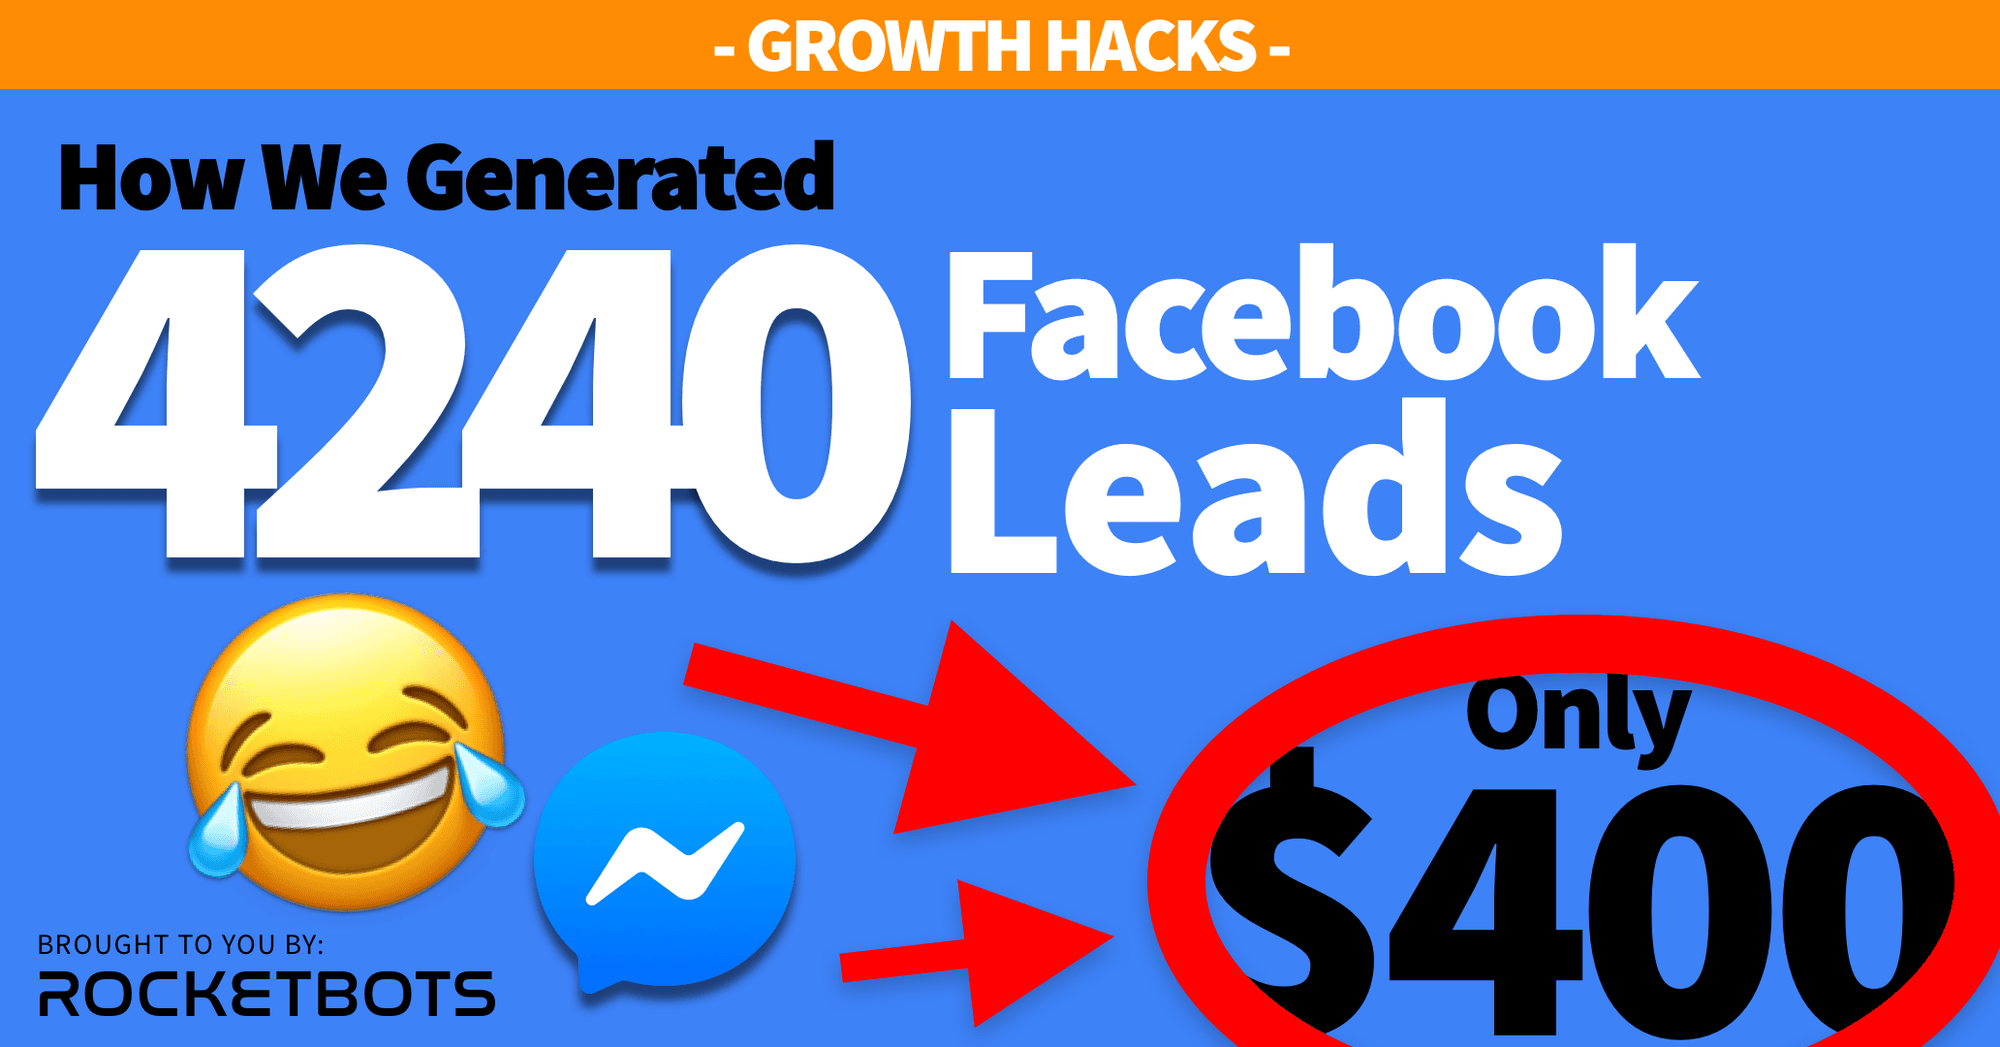 How We Generated 4,240 Facebook Messenger Leads for $400USD + 3 Surprises